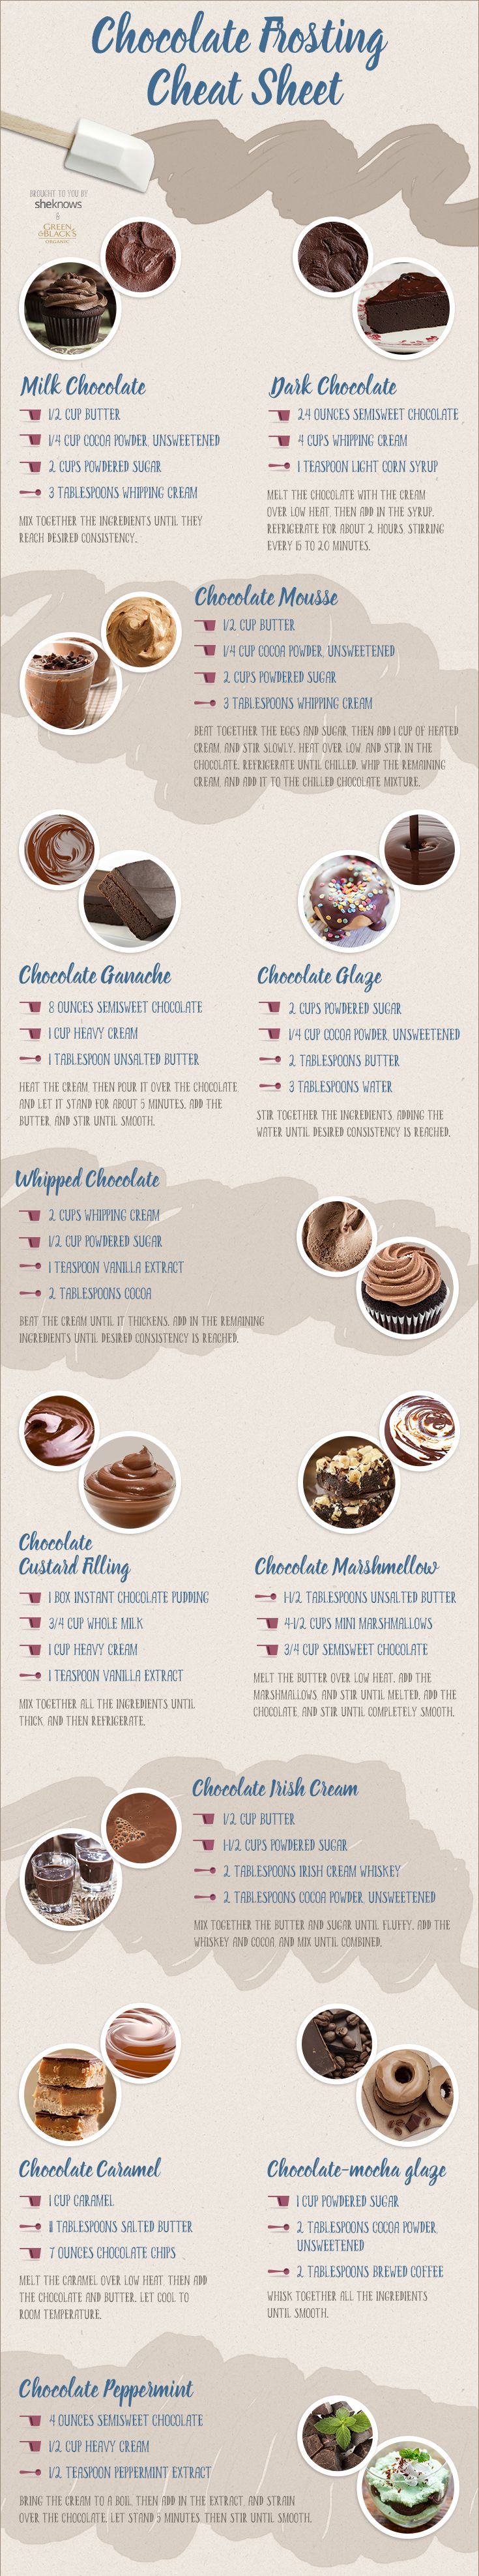 A chocolate frosting cheat sheet to keep you sane this holiday season